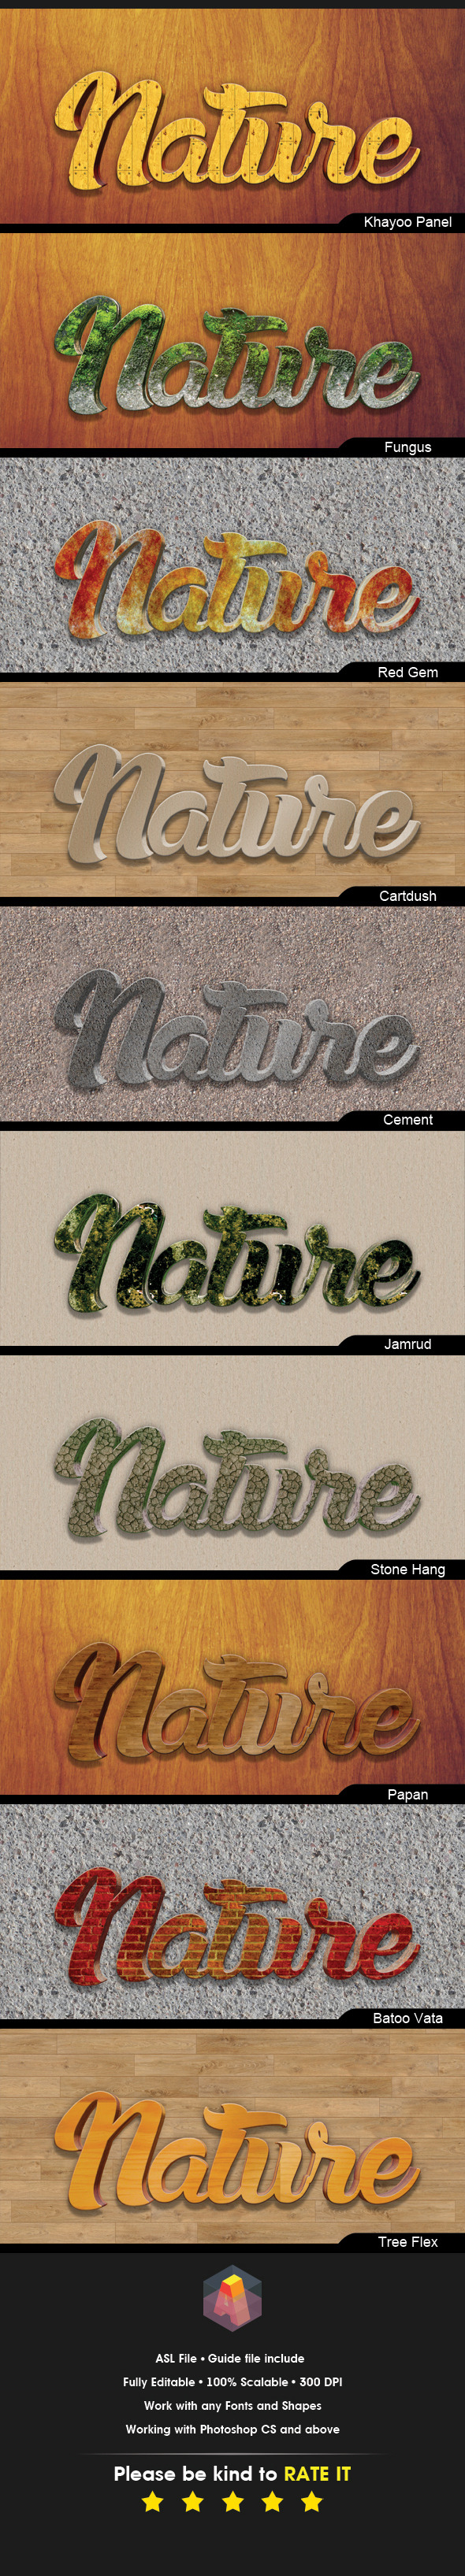 3D Text Effects Nature Styles - Text Effects Styles